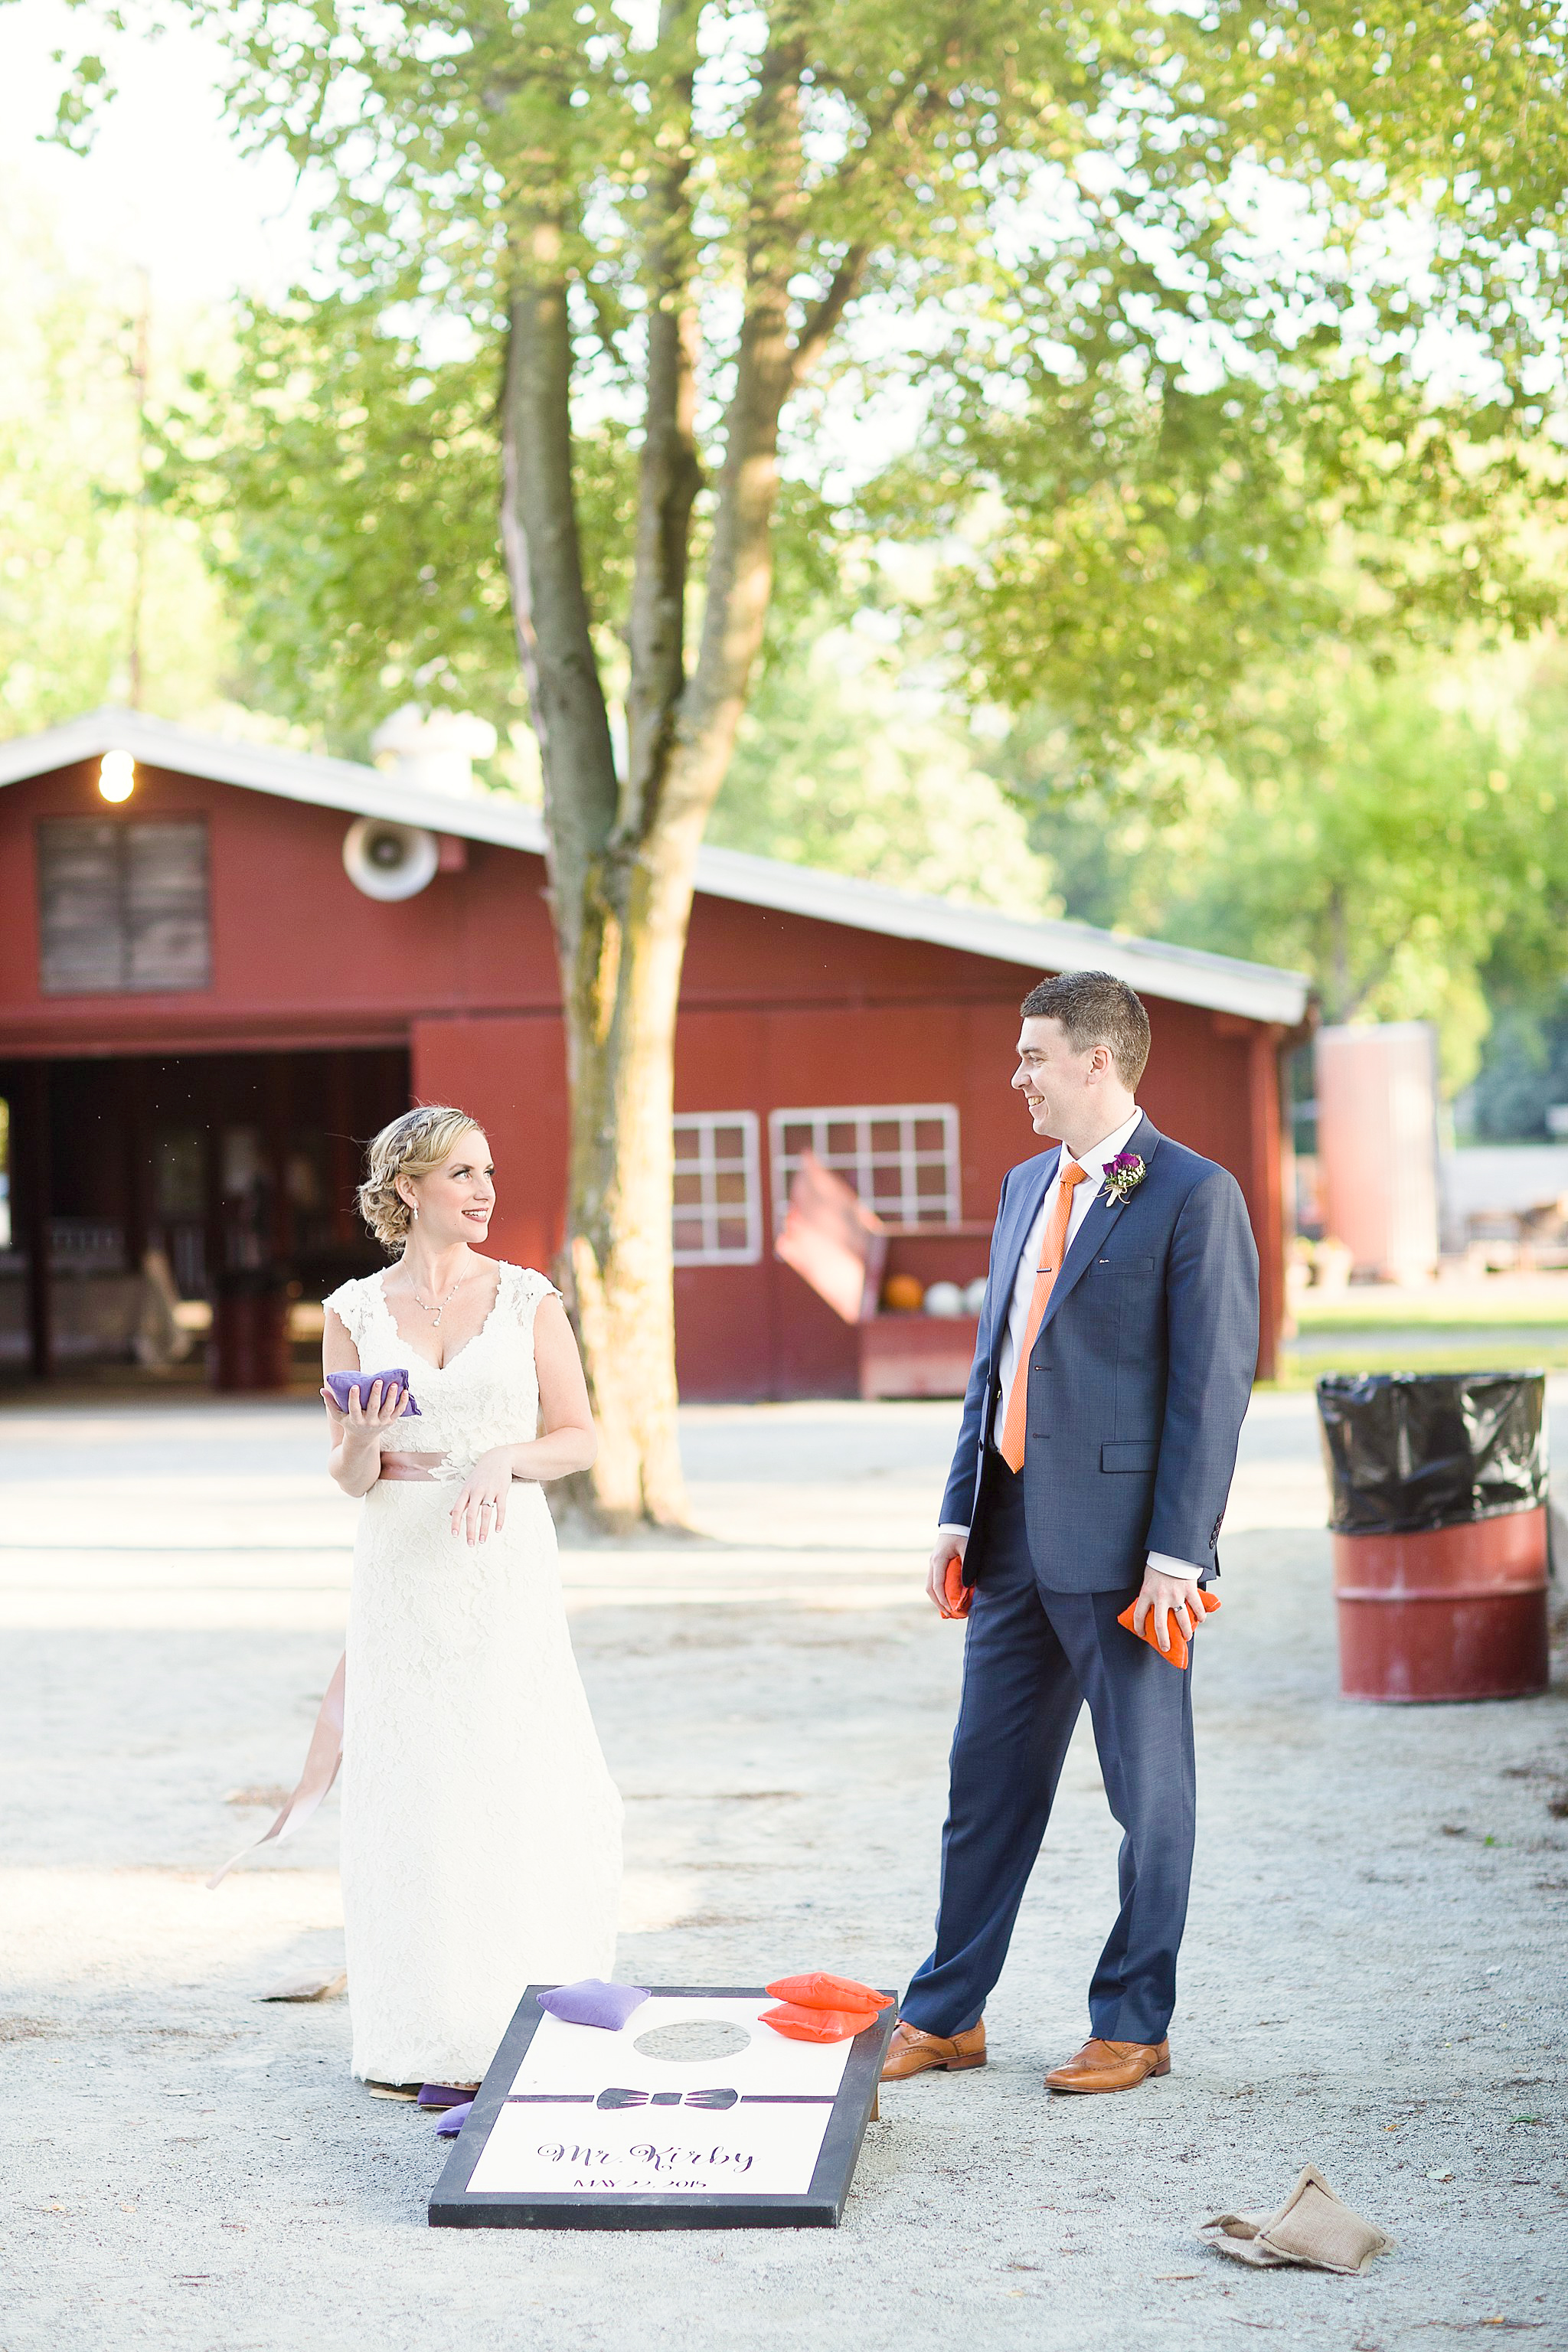 wedding photographers with best reviews Maryland